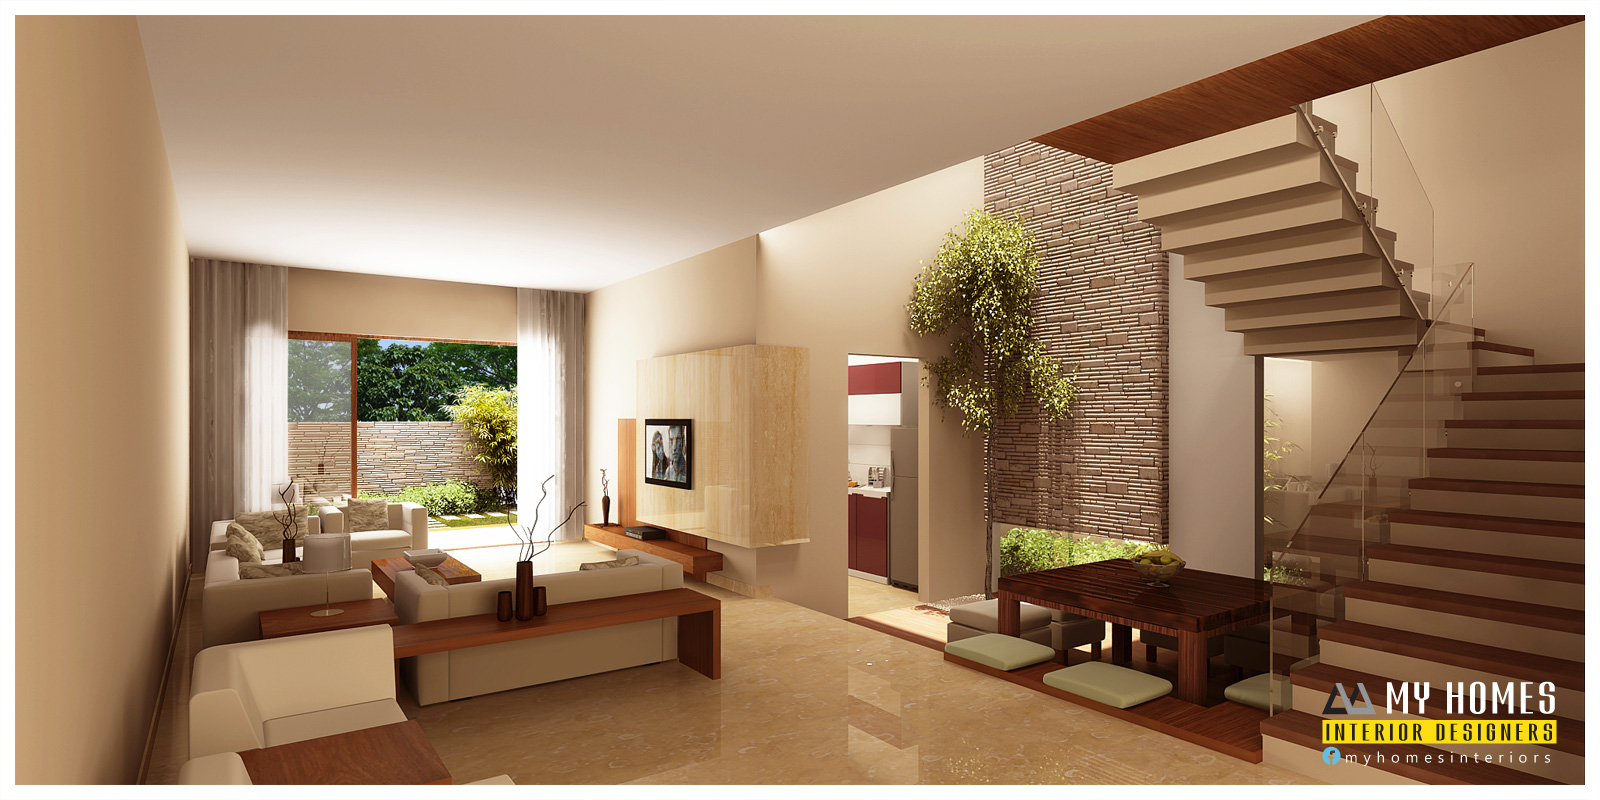 Kerala interior design ideas from designing company thrissur for Latest interior designs for home